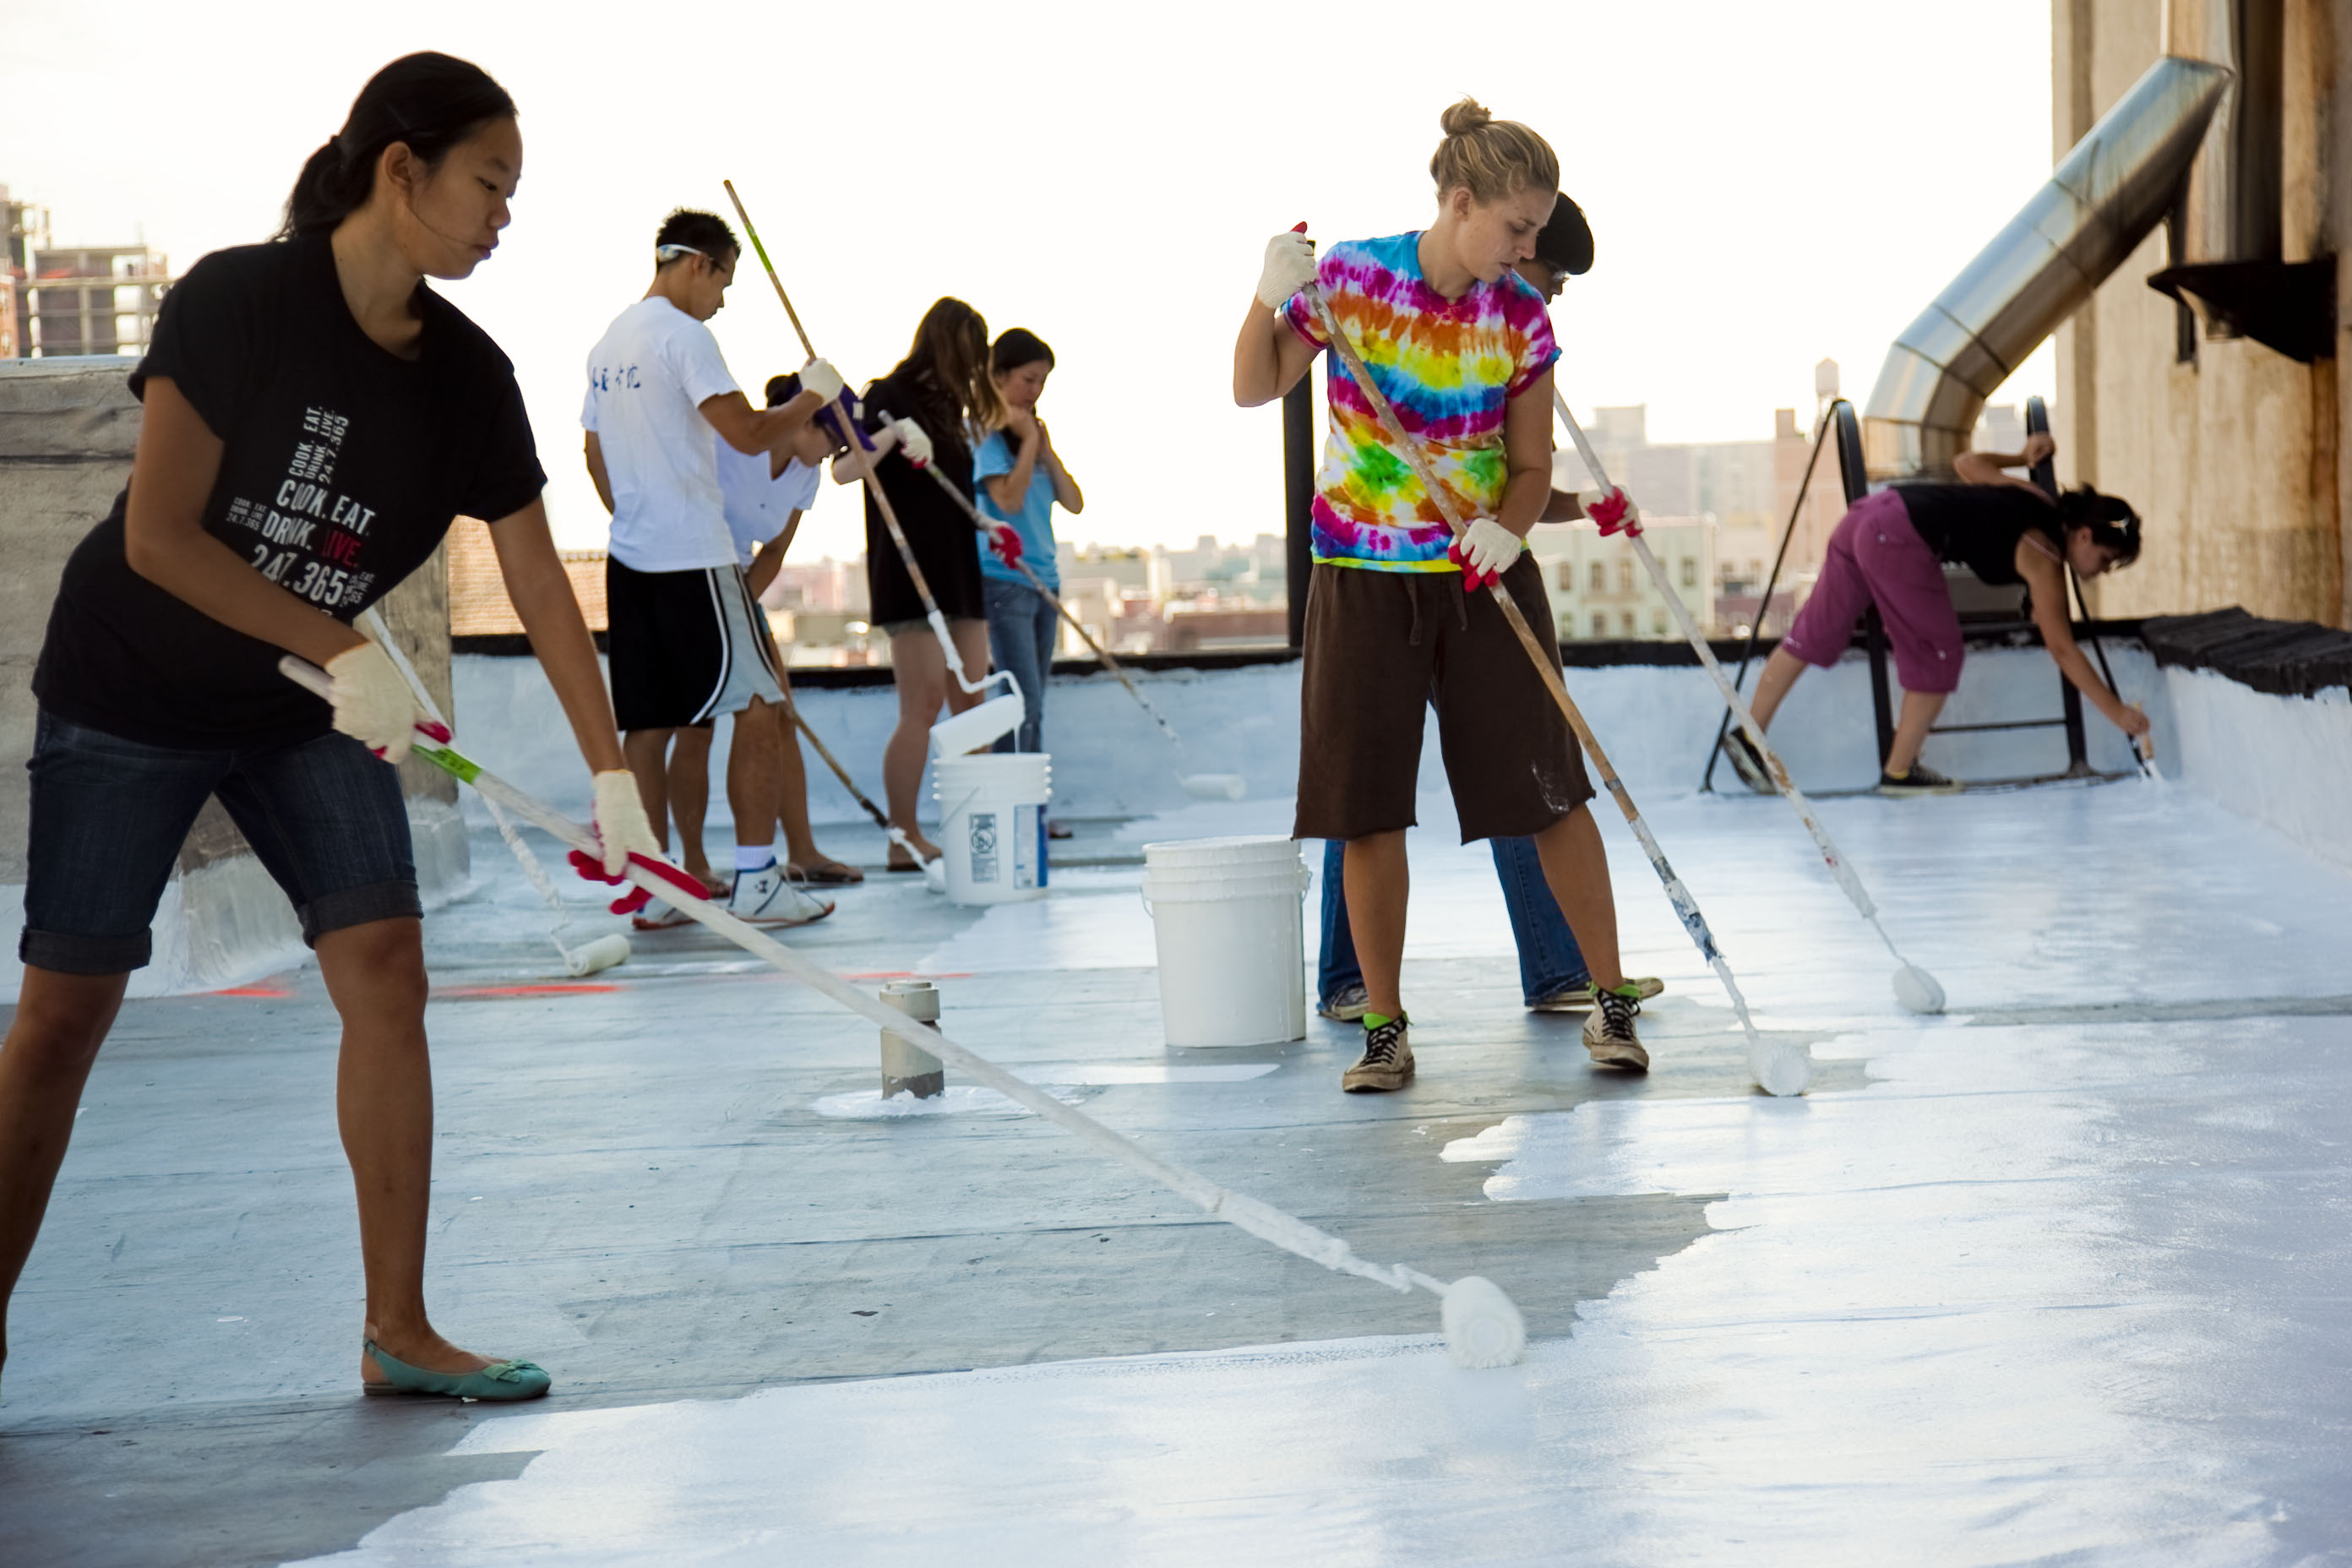 A Relatively New Trend Among Roofing Products Is Roof Paint. Many Roofers  Feel That Painting A Roof Can Produce Many Benefits For Homeowners, ...